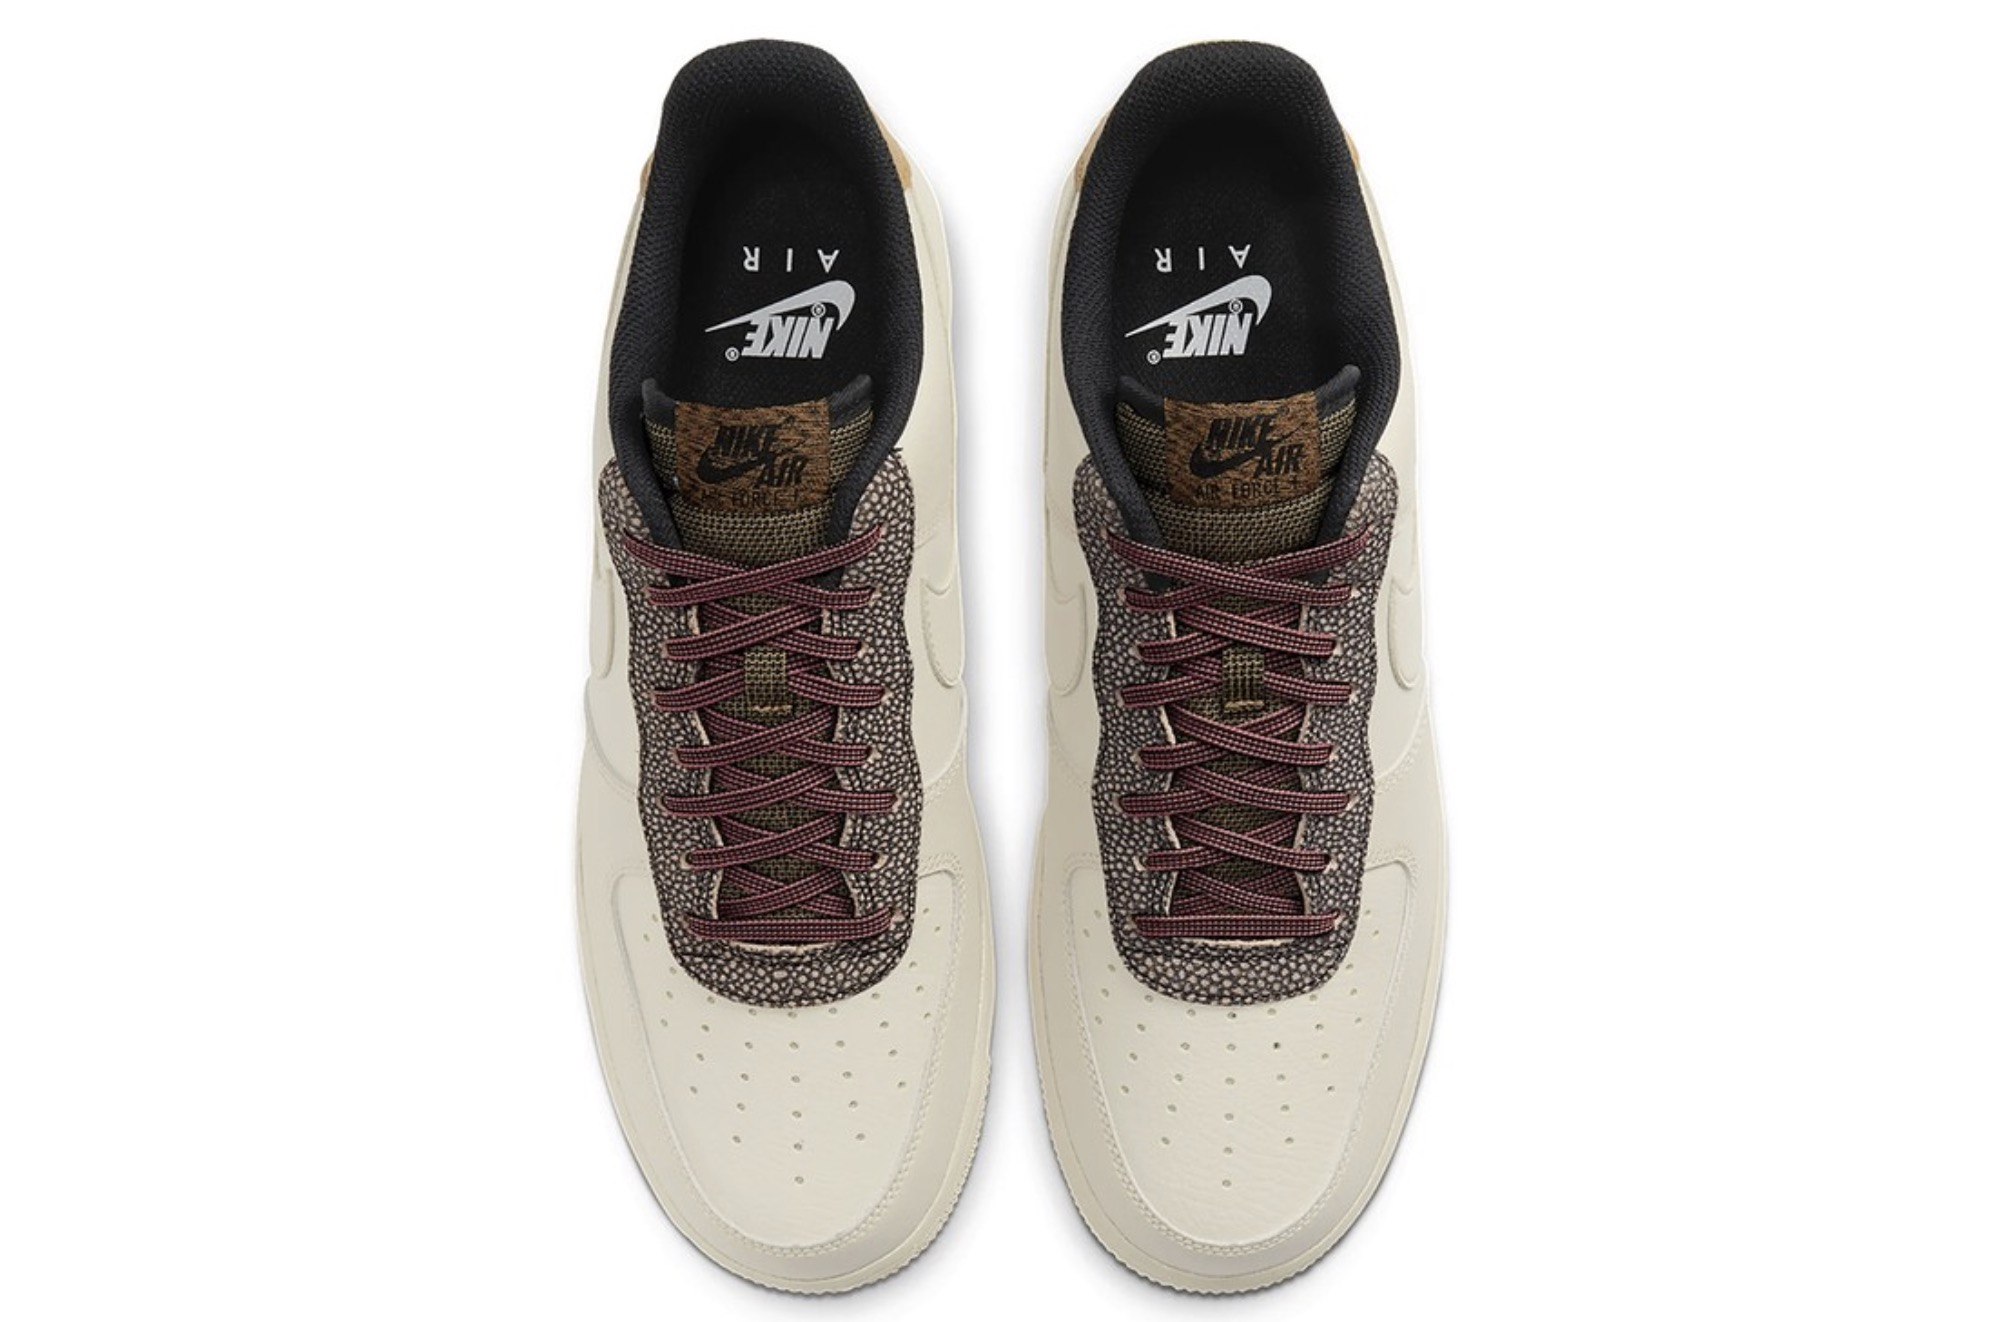 """Nike's Air Force 1 07 in """"Fossil:Wheat:Shimmer"""" 5 laces"""